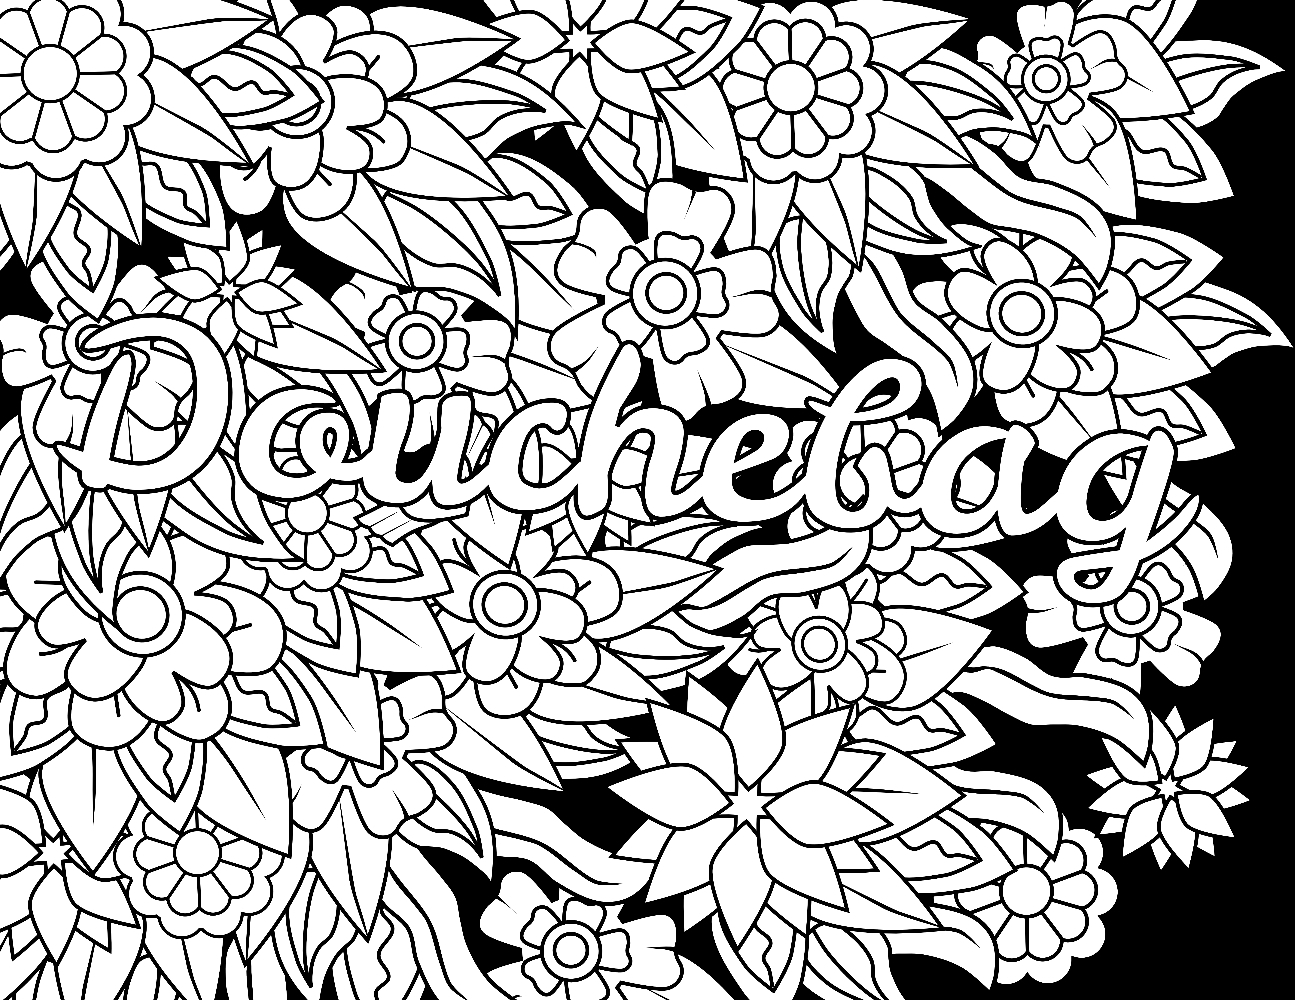 1295x1000 Awesome Douchebag Swear Word Coloring Page Adult Coloring Page